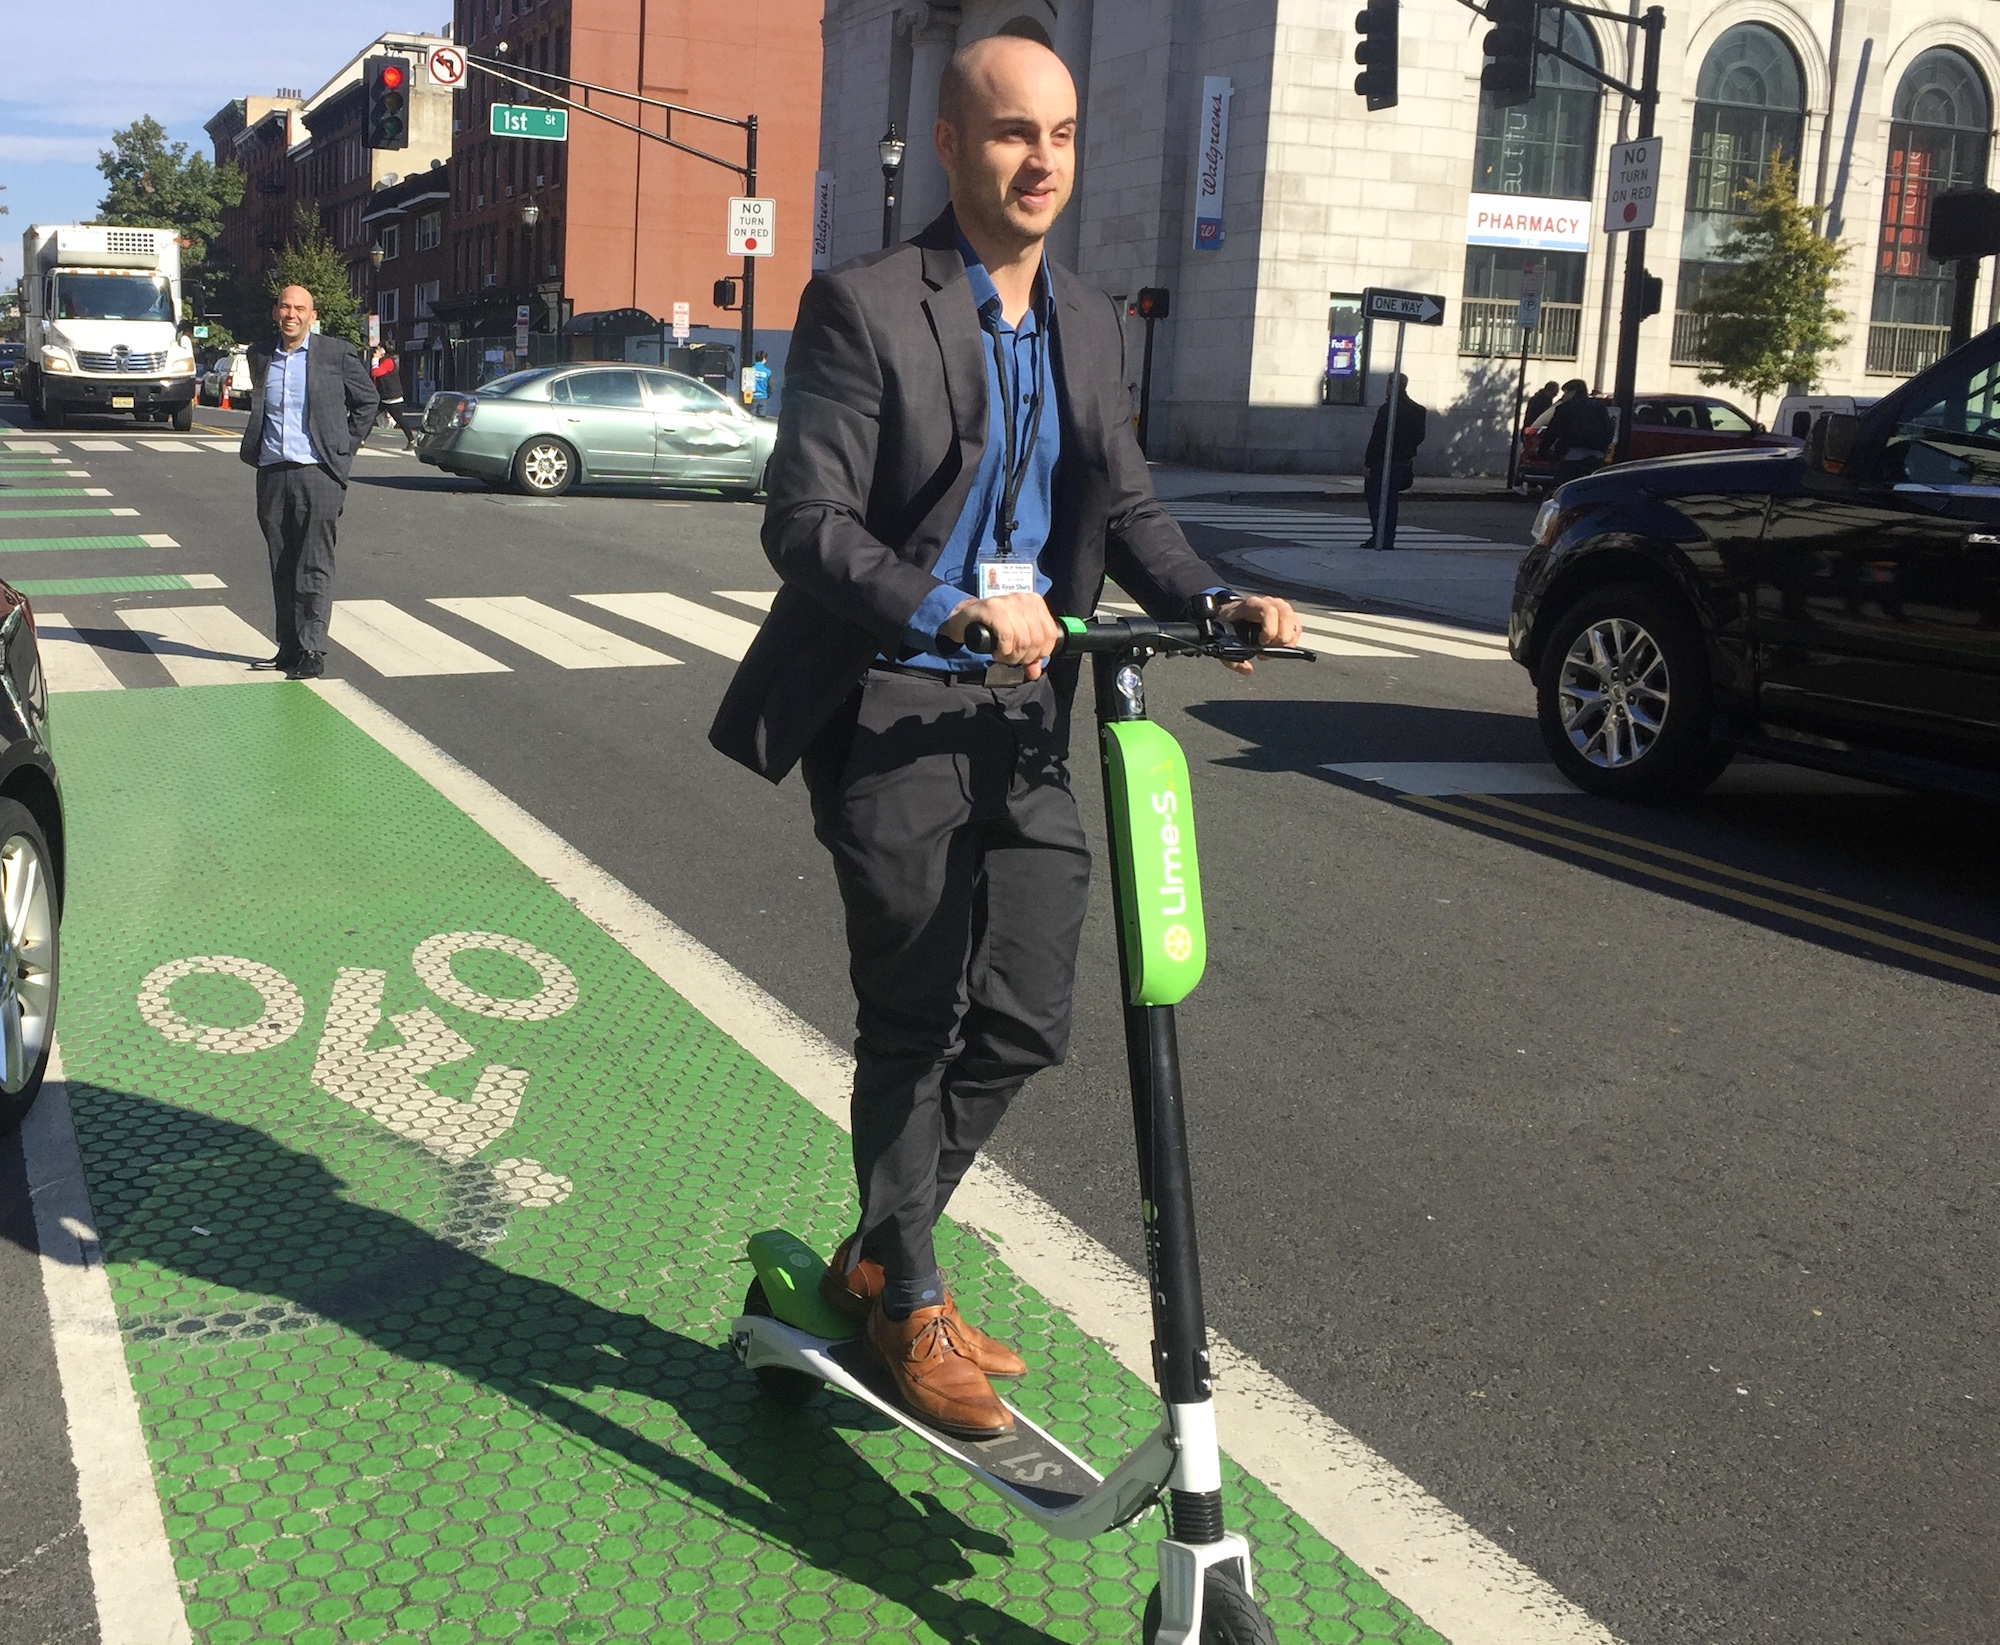 Hoboken to become first city in NJ to launch electric